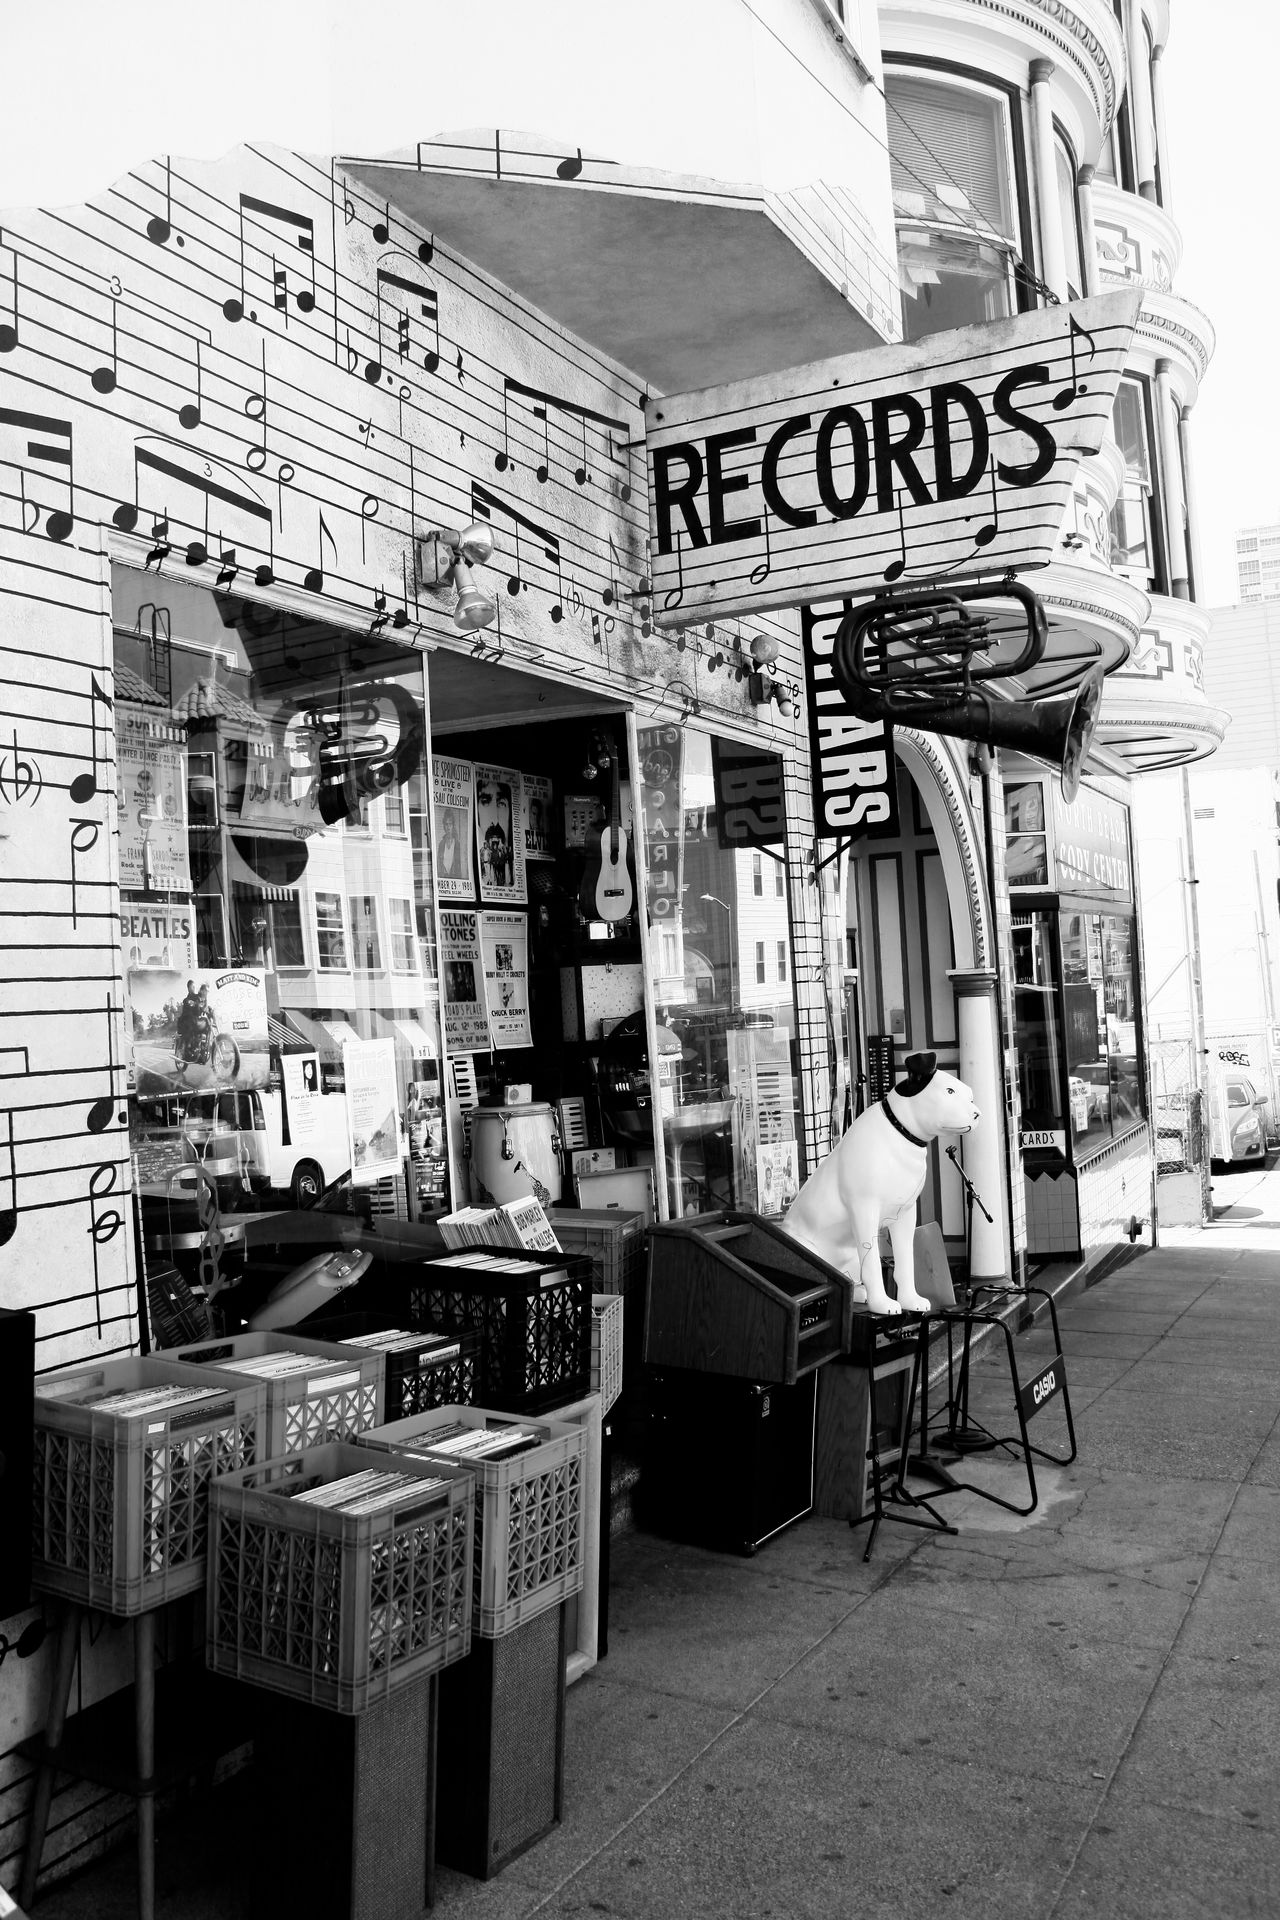 Housemusic Adult Architecture Building Exterior Built Structure Cafe Chair City Day Frisco Housemusic Keynote Leisure Activity Outdoors People Record Shop Record Store San Francisco Score Scoreboard Table